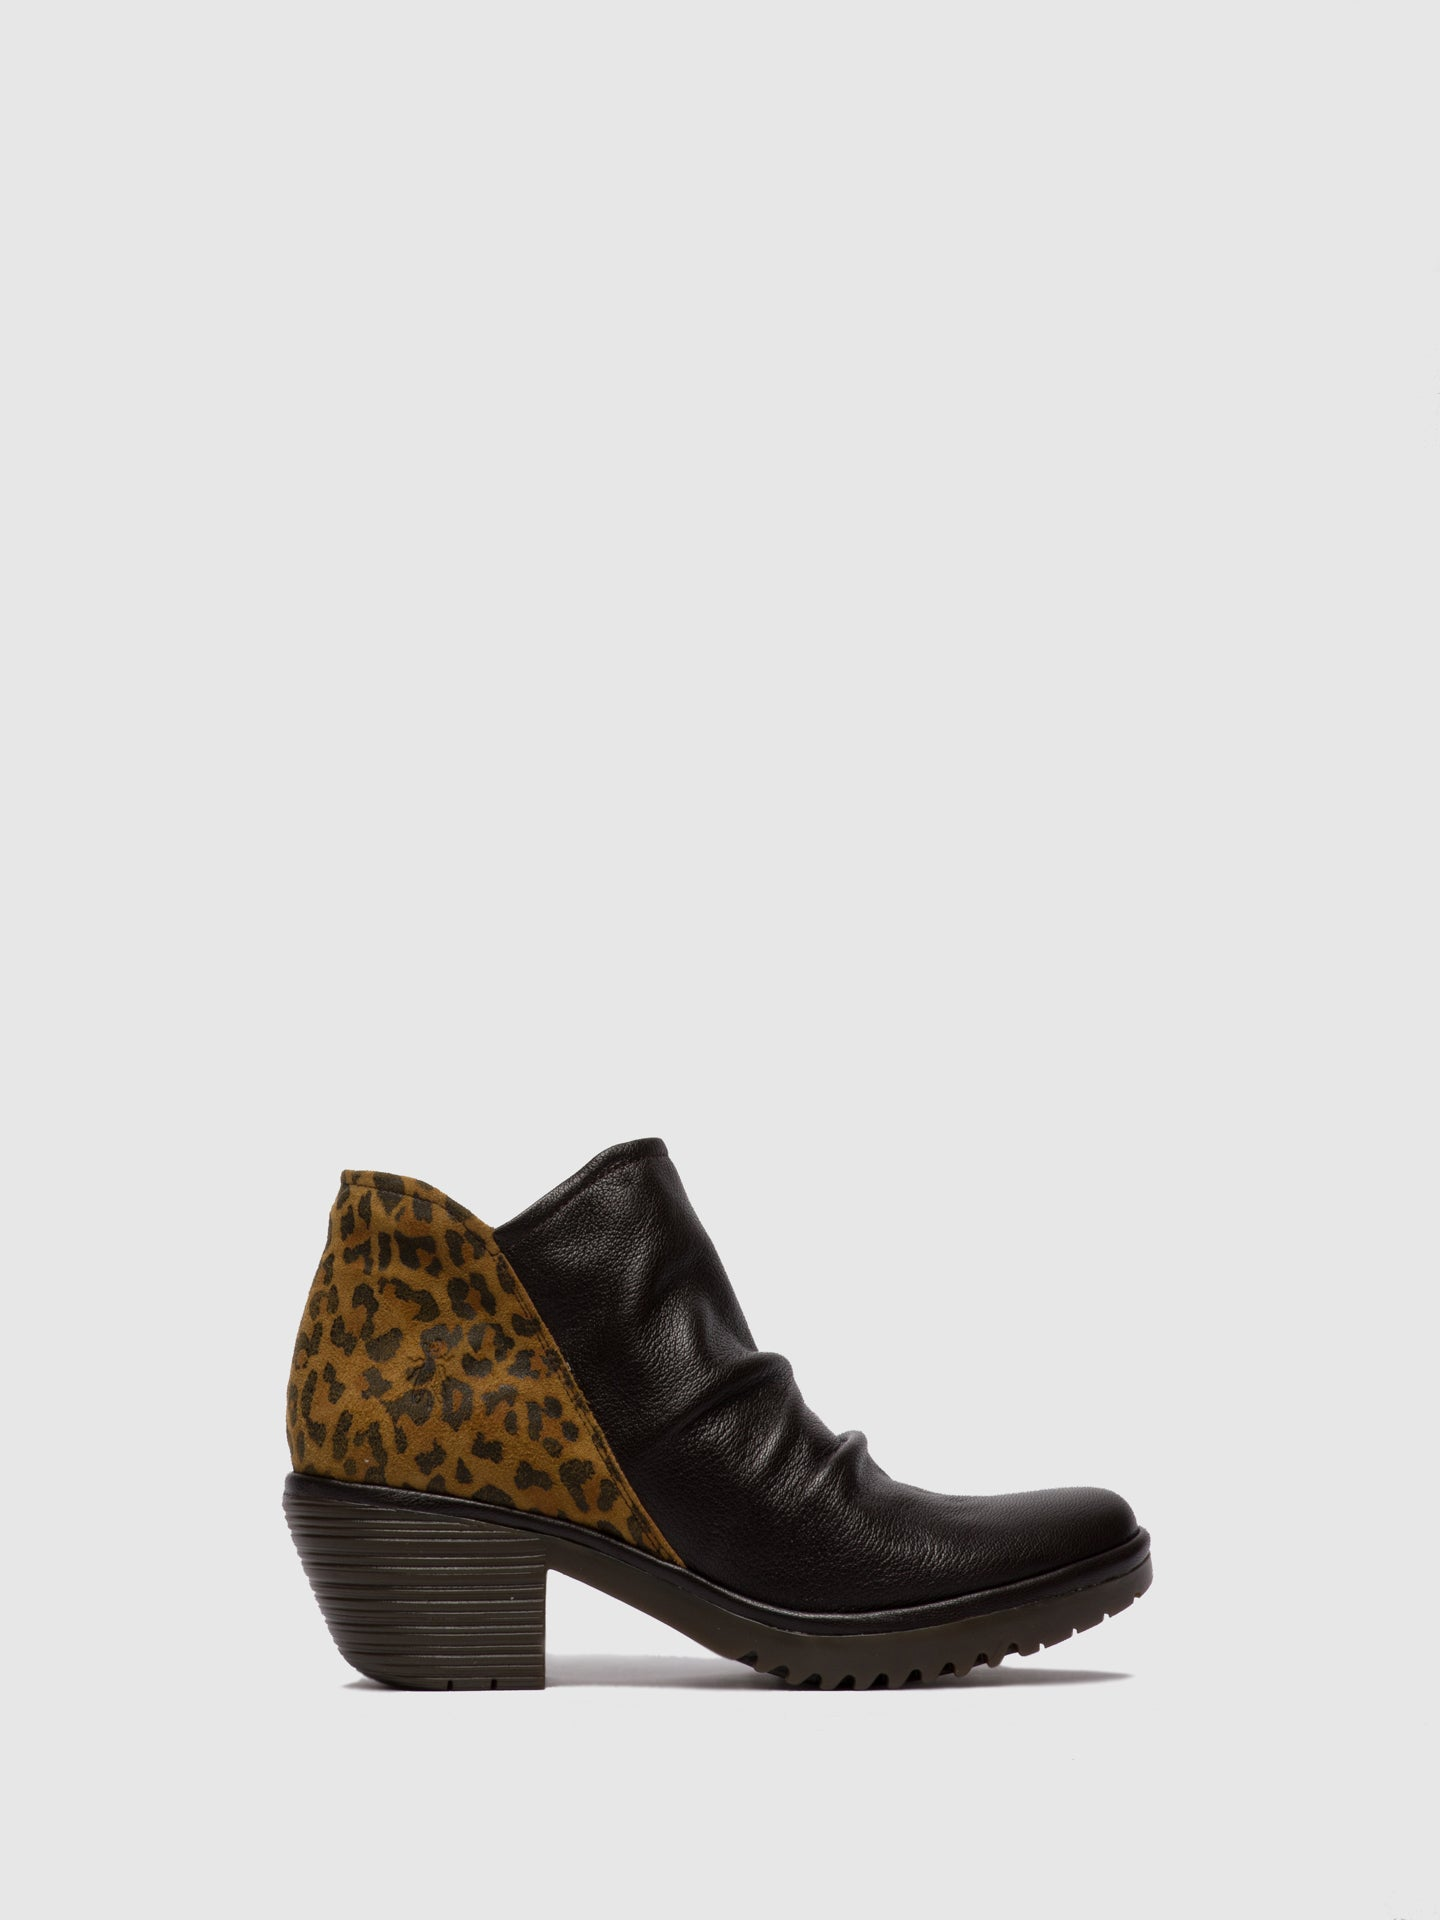 Fly London Zip Up Ankle Boots WEZO890FLY MOUSSE/CHEETAH CHOCOLATE/TAN